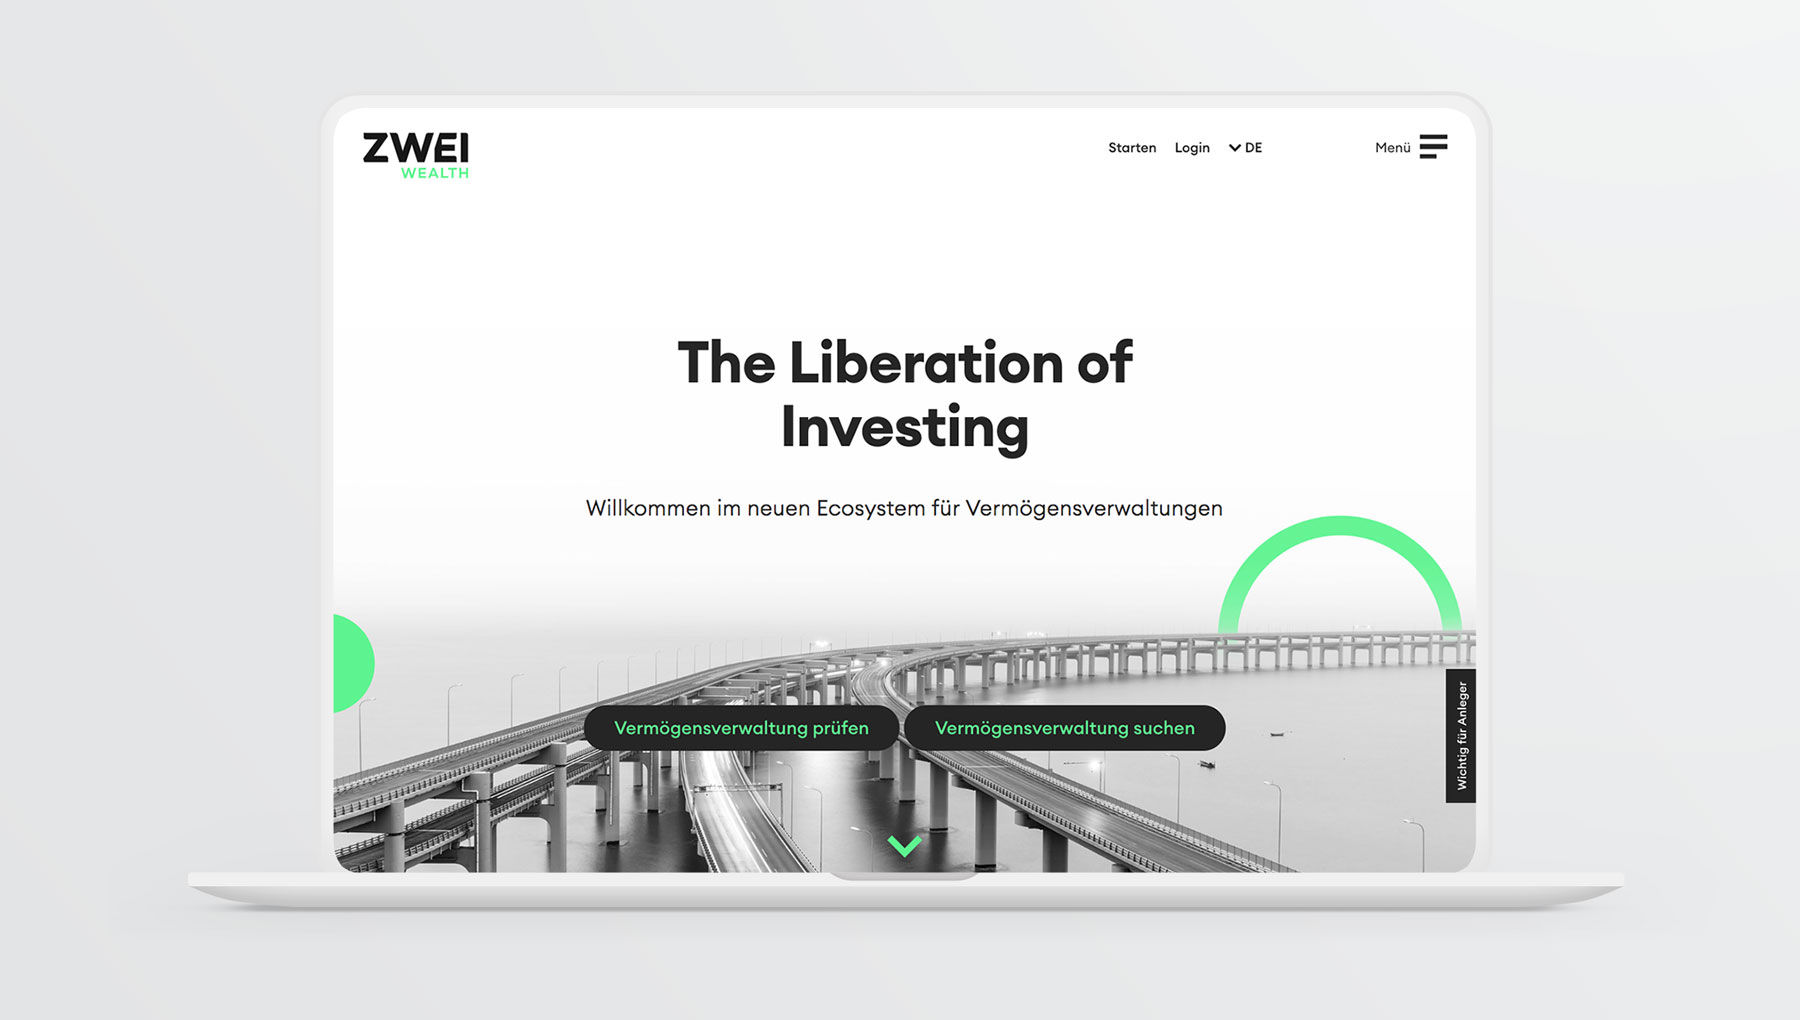 ZWEI Wealth Website